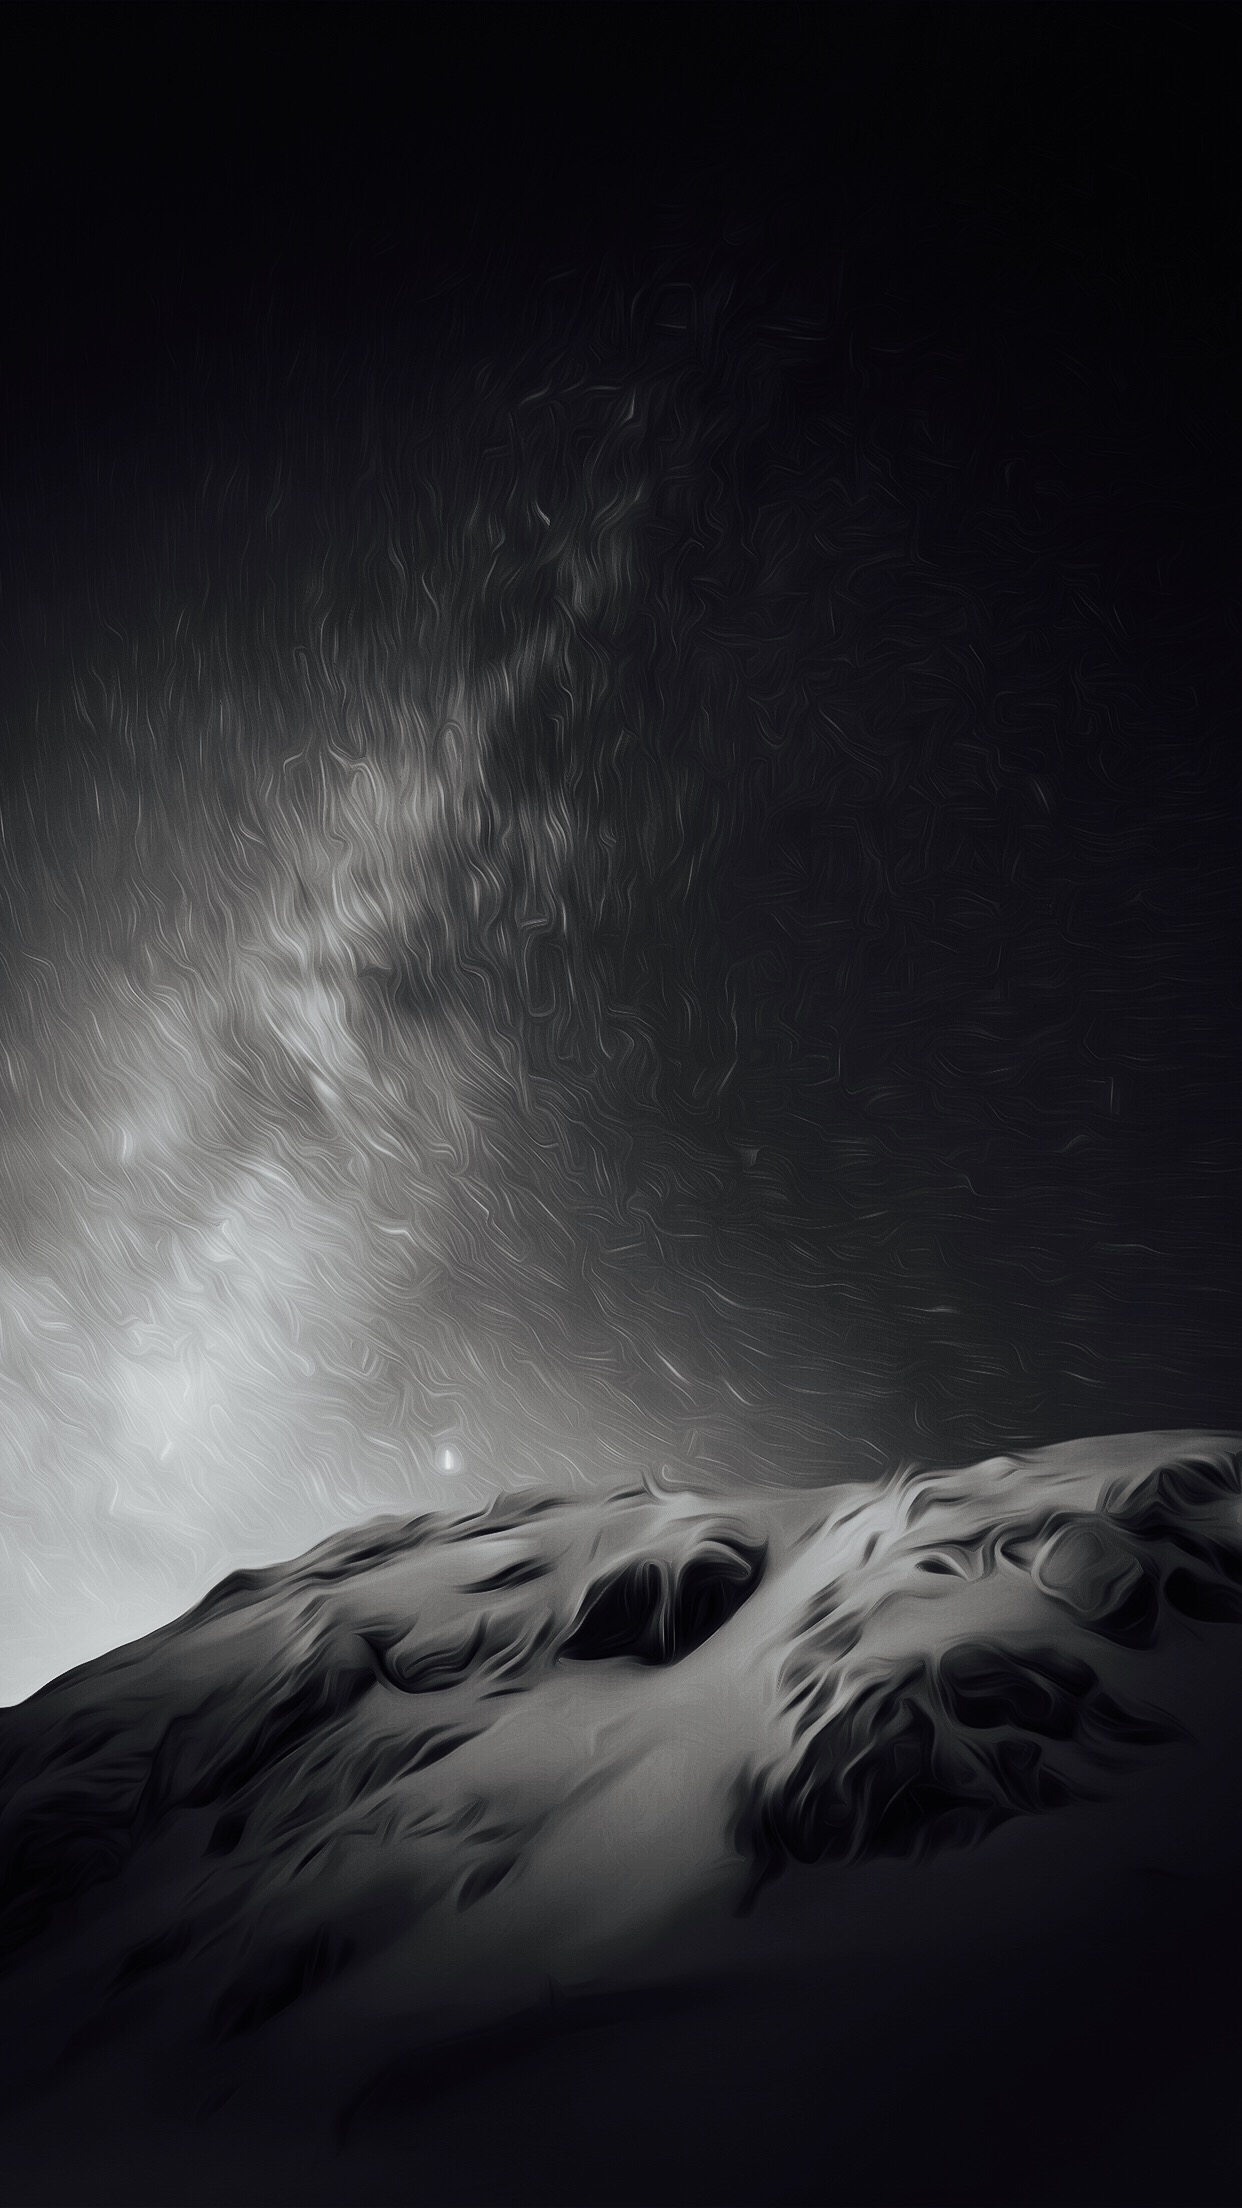 Black and white wallpapers for macOS and iOS 1242x2208